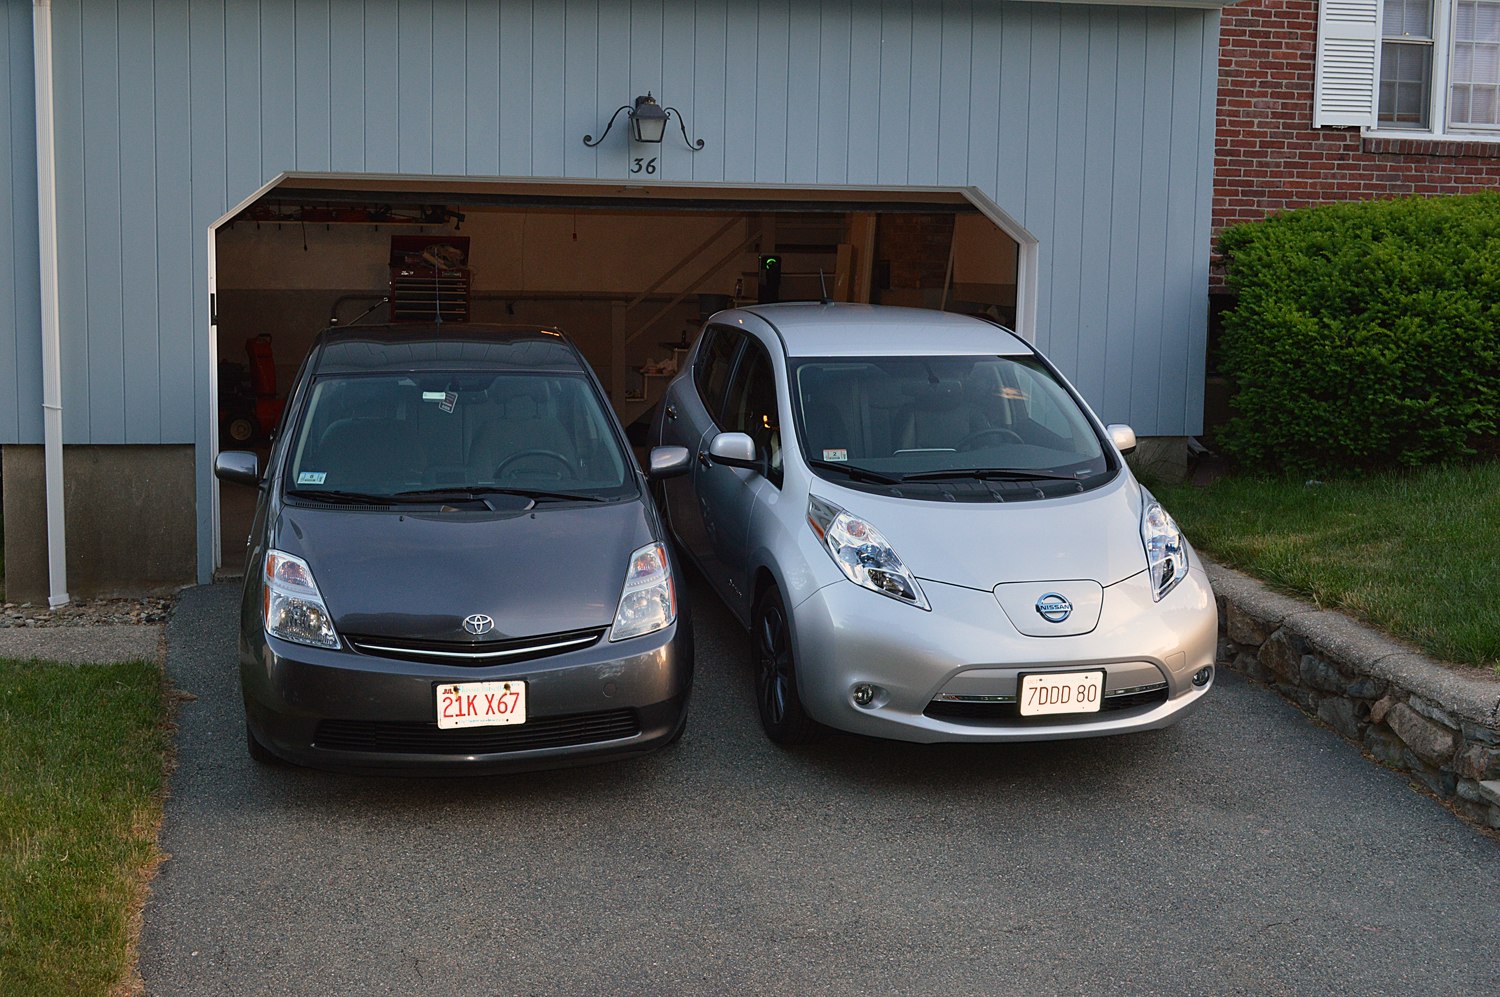 Nissan Leaf Electric Vs Toyota Prius Hybrid Which Is Lower On Cost Emissions